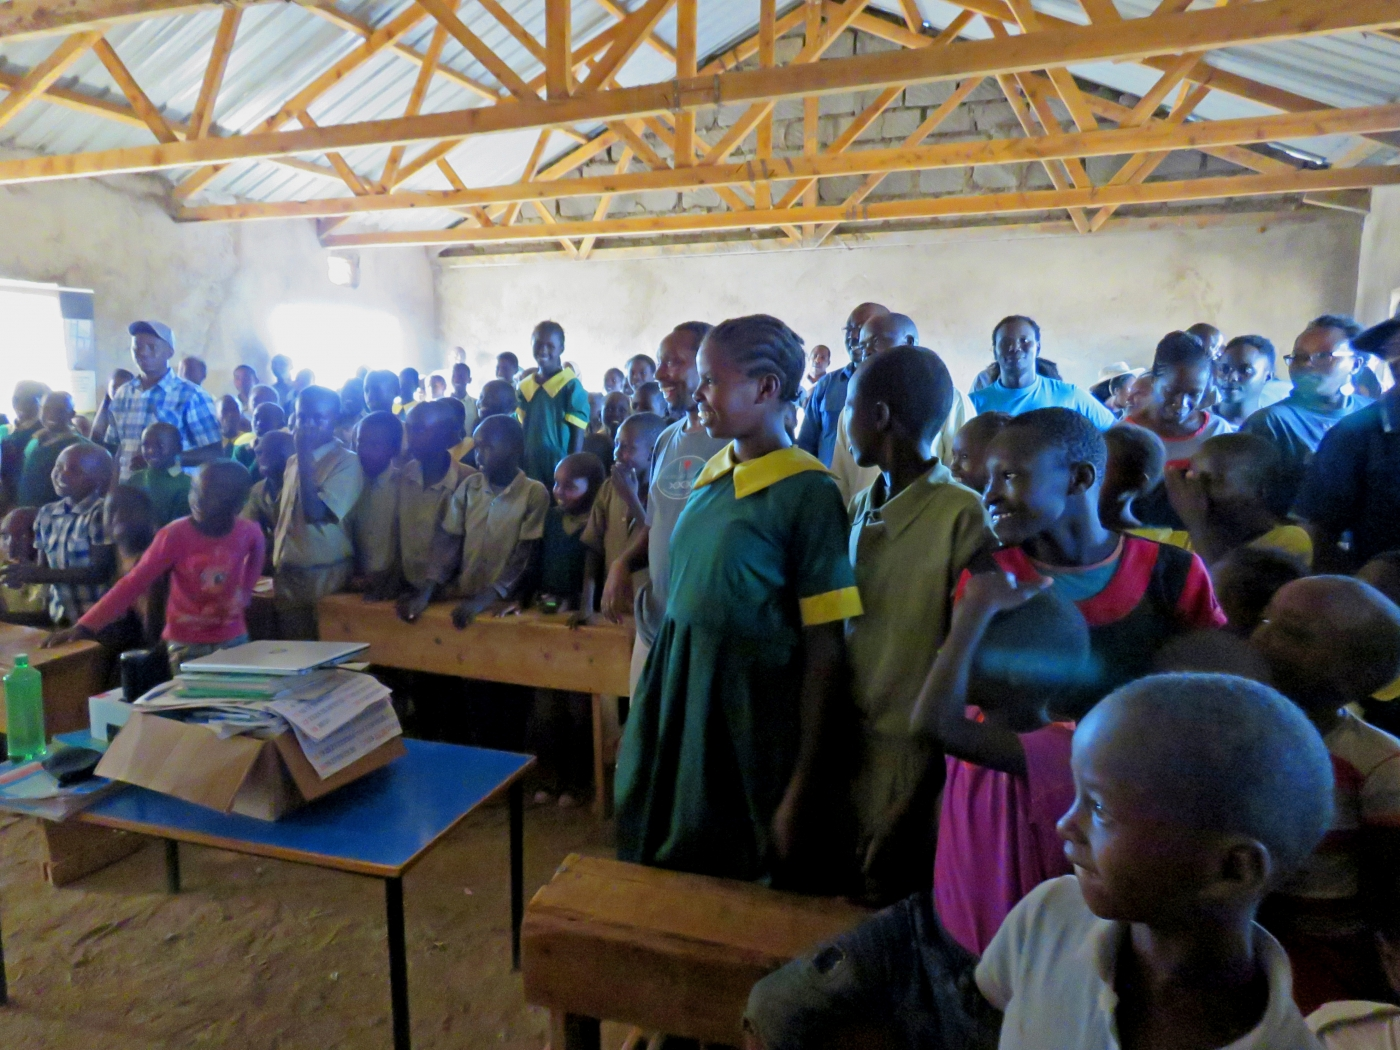 A group of primary school students in a classroom in Laikipia, Kenya, watch a documentary. Some are seated and some are standing.